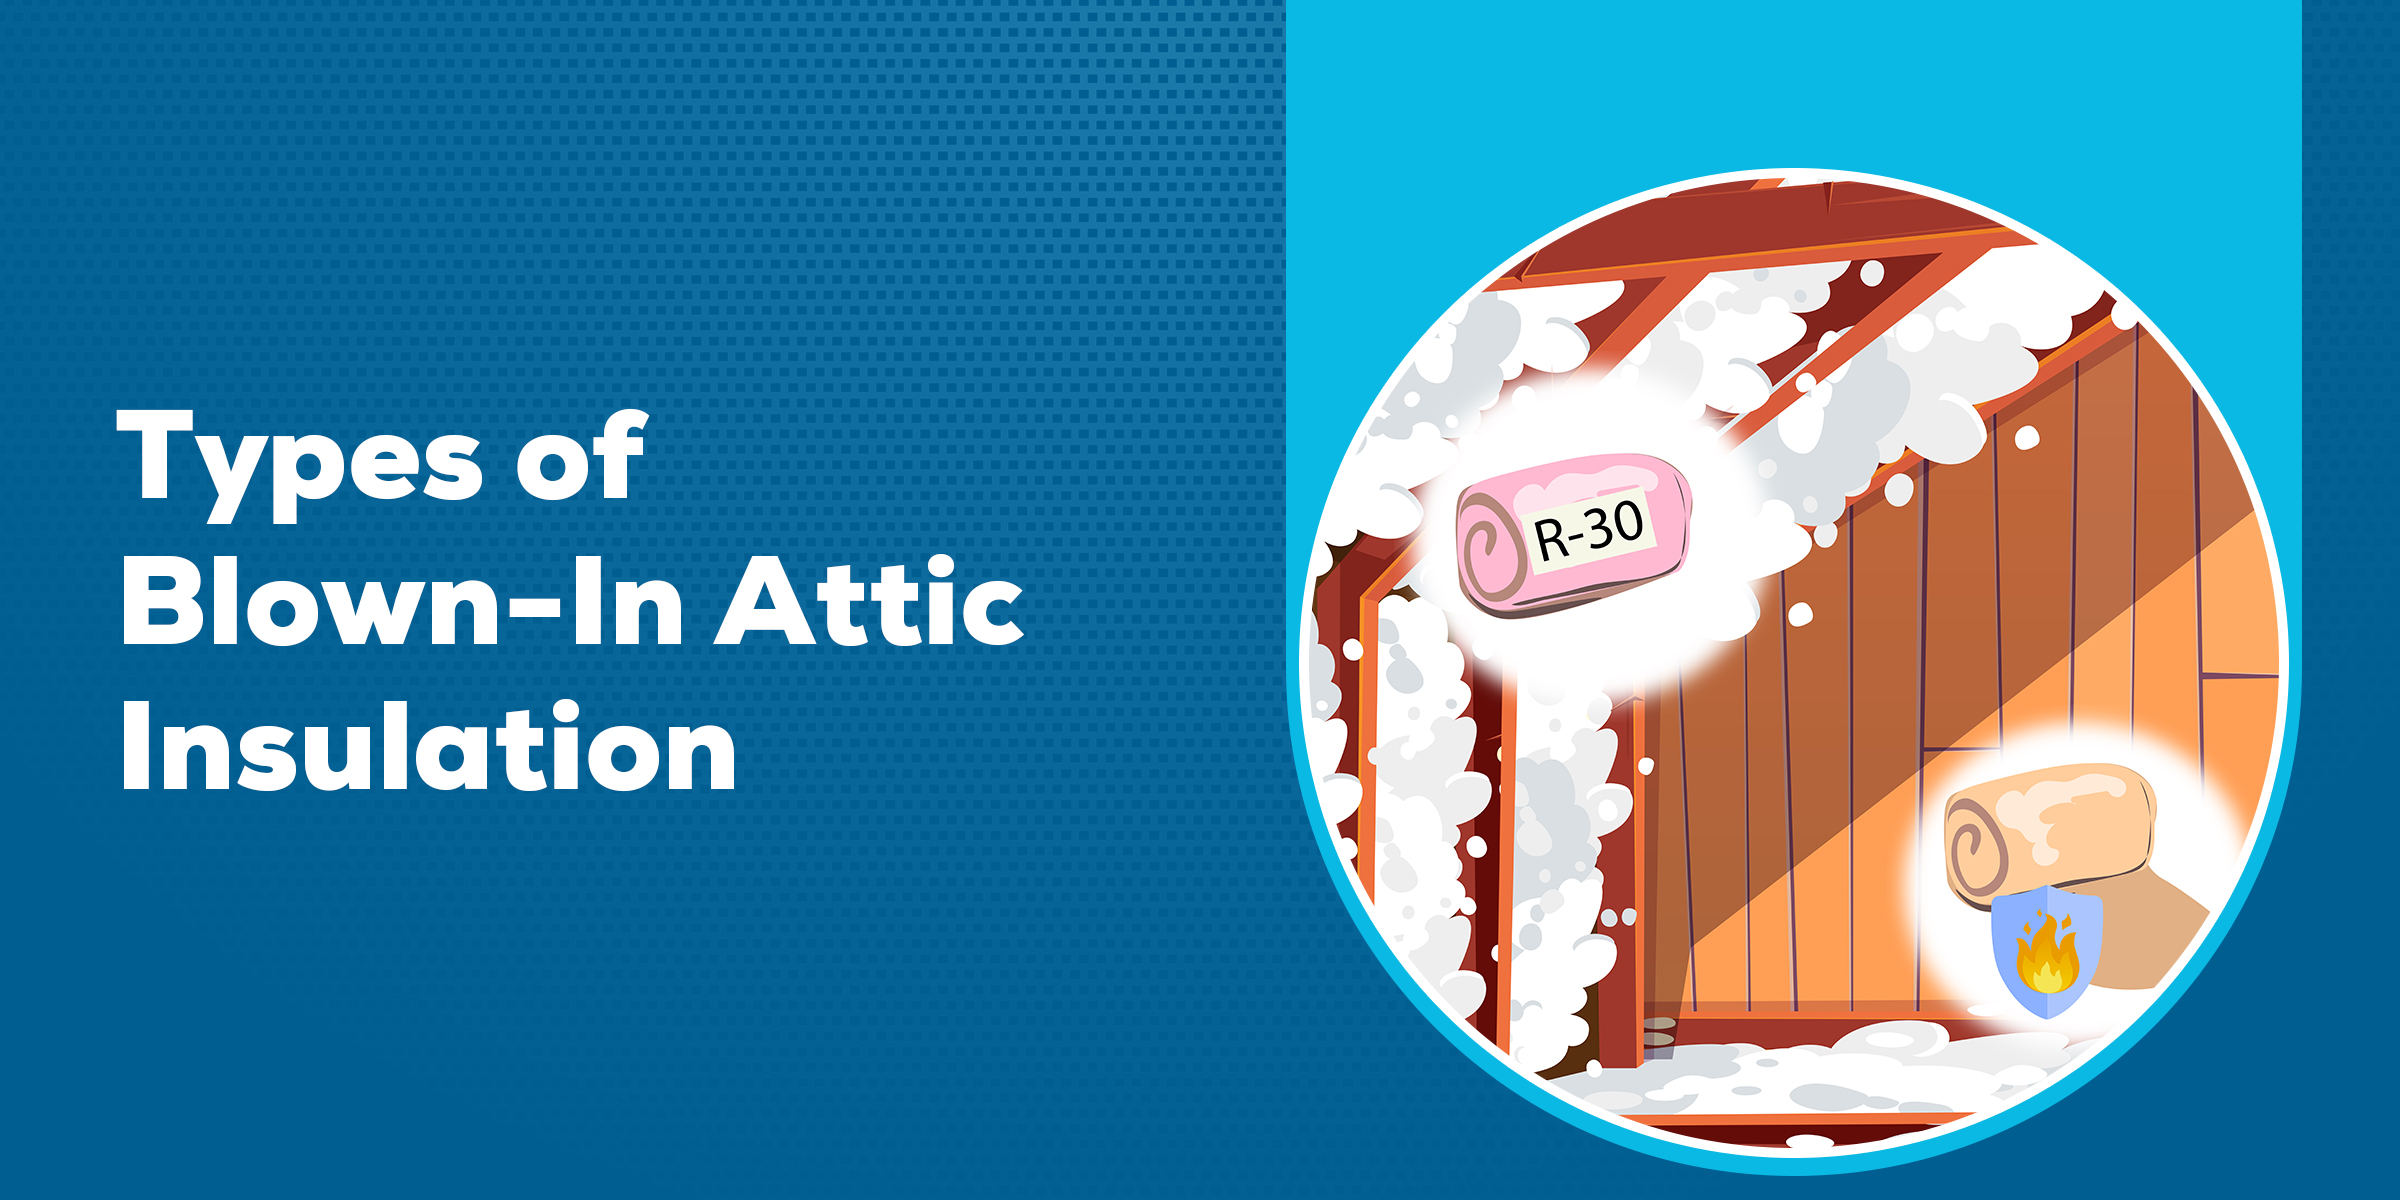 Types of Blown in Attic Insulation